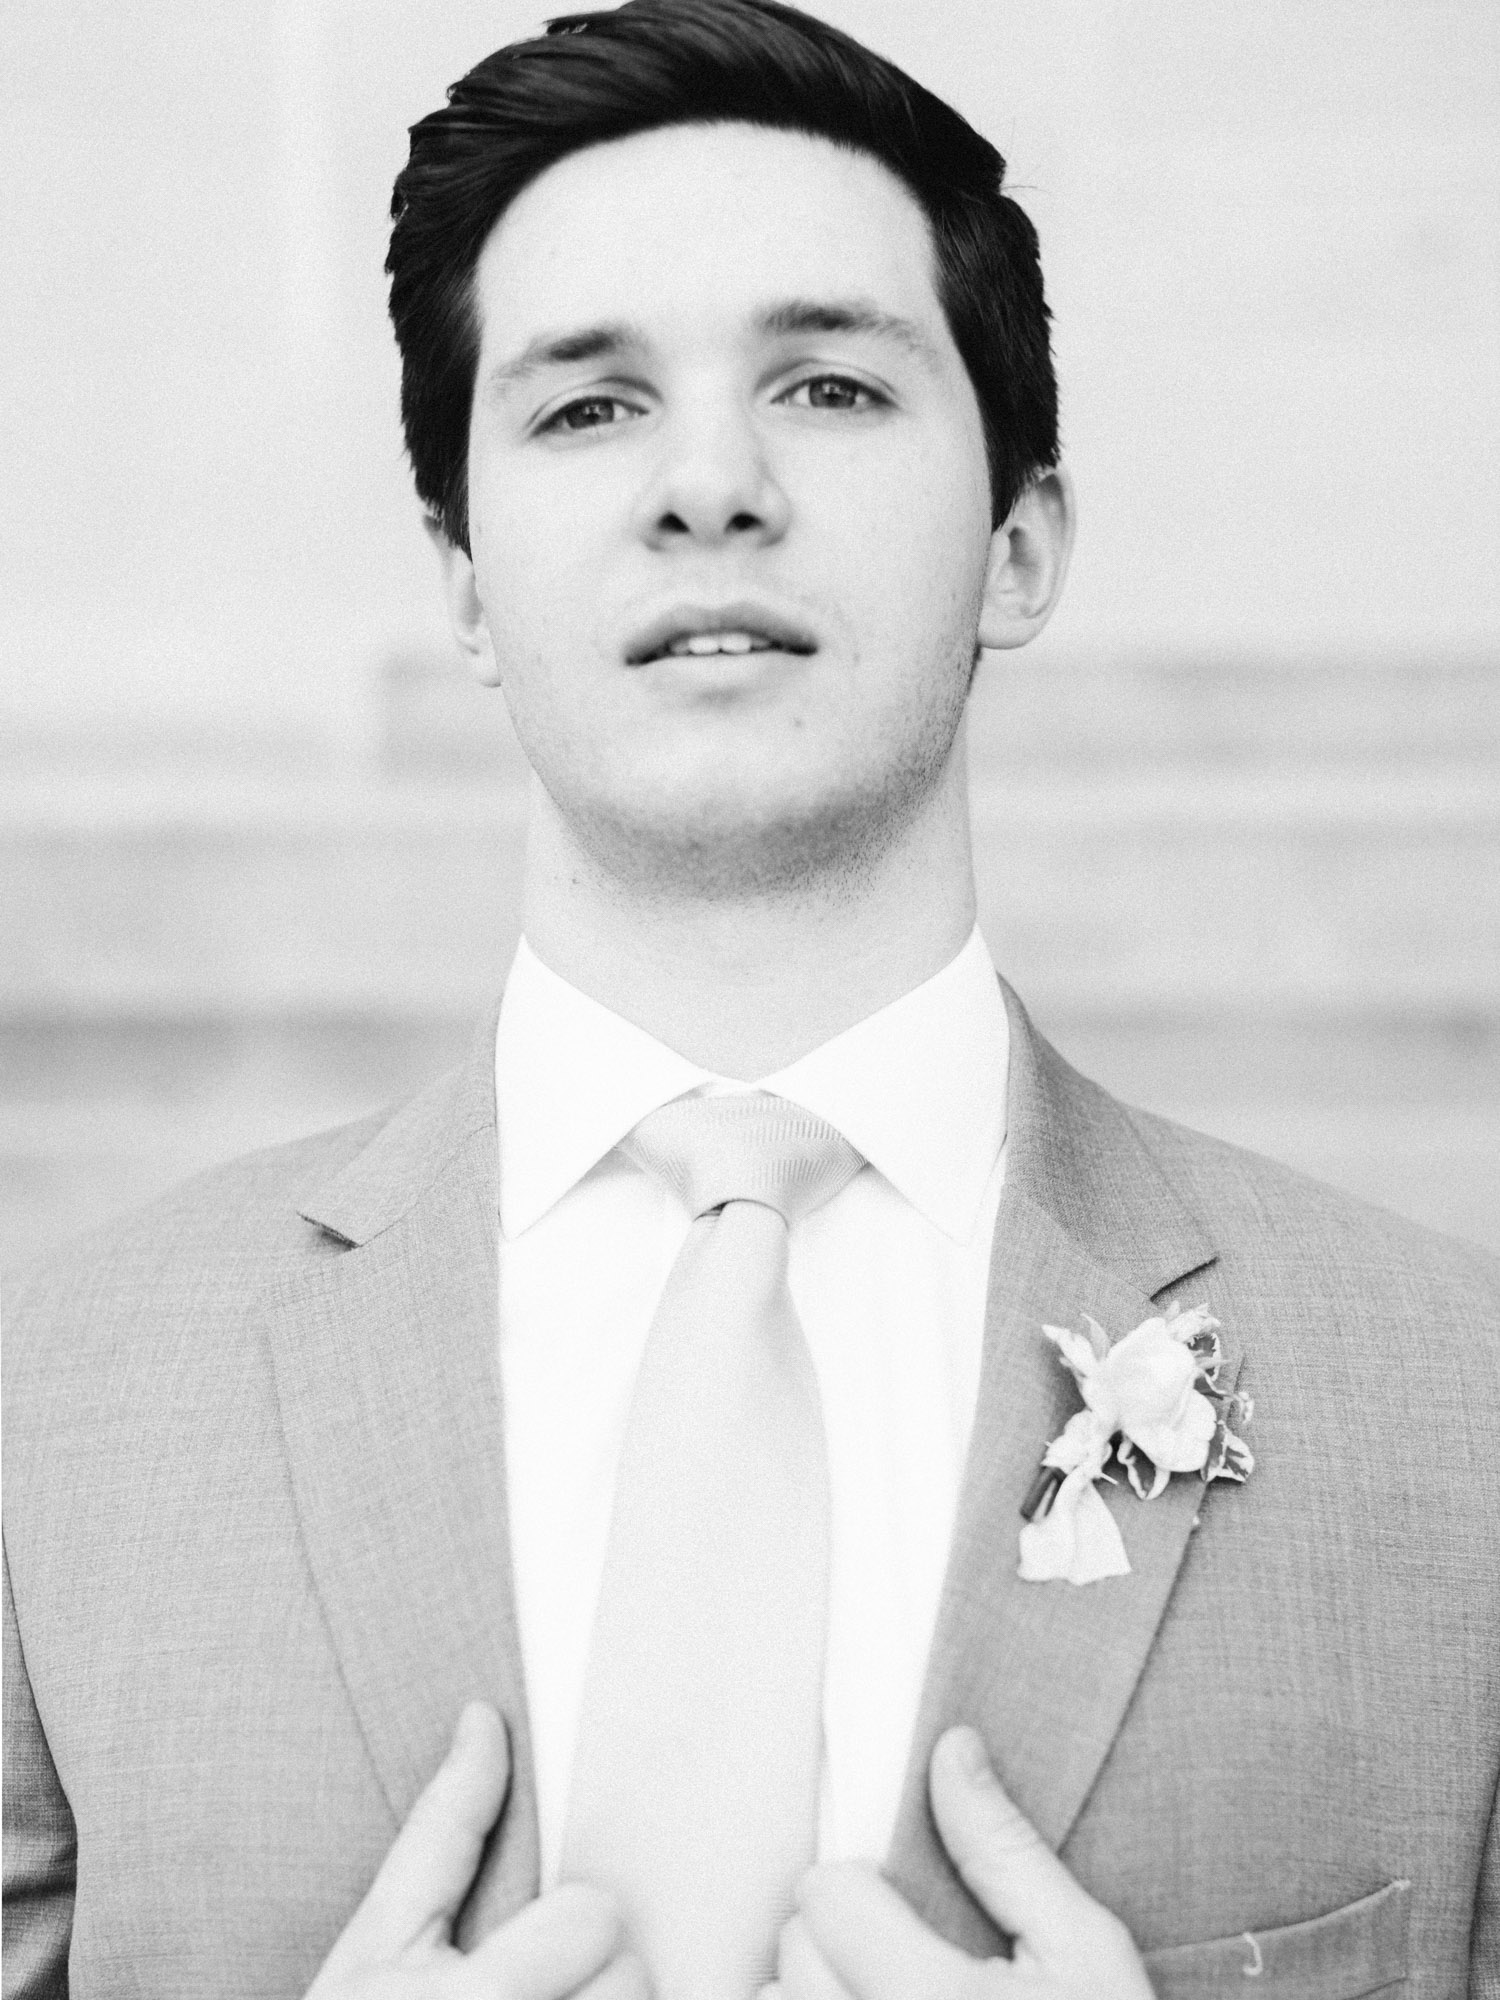 A black and white portrait of a groom as he adjusts his jacket